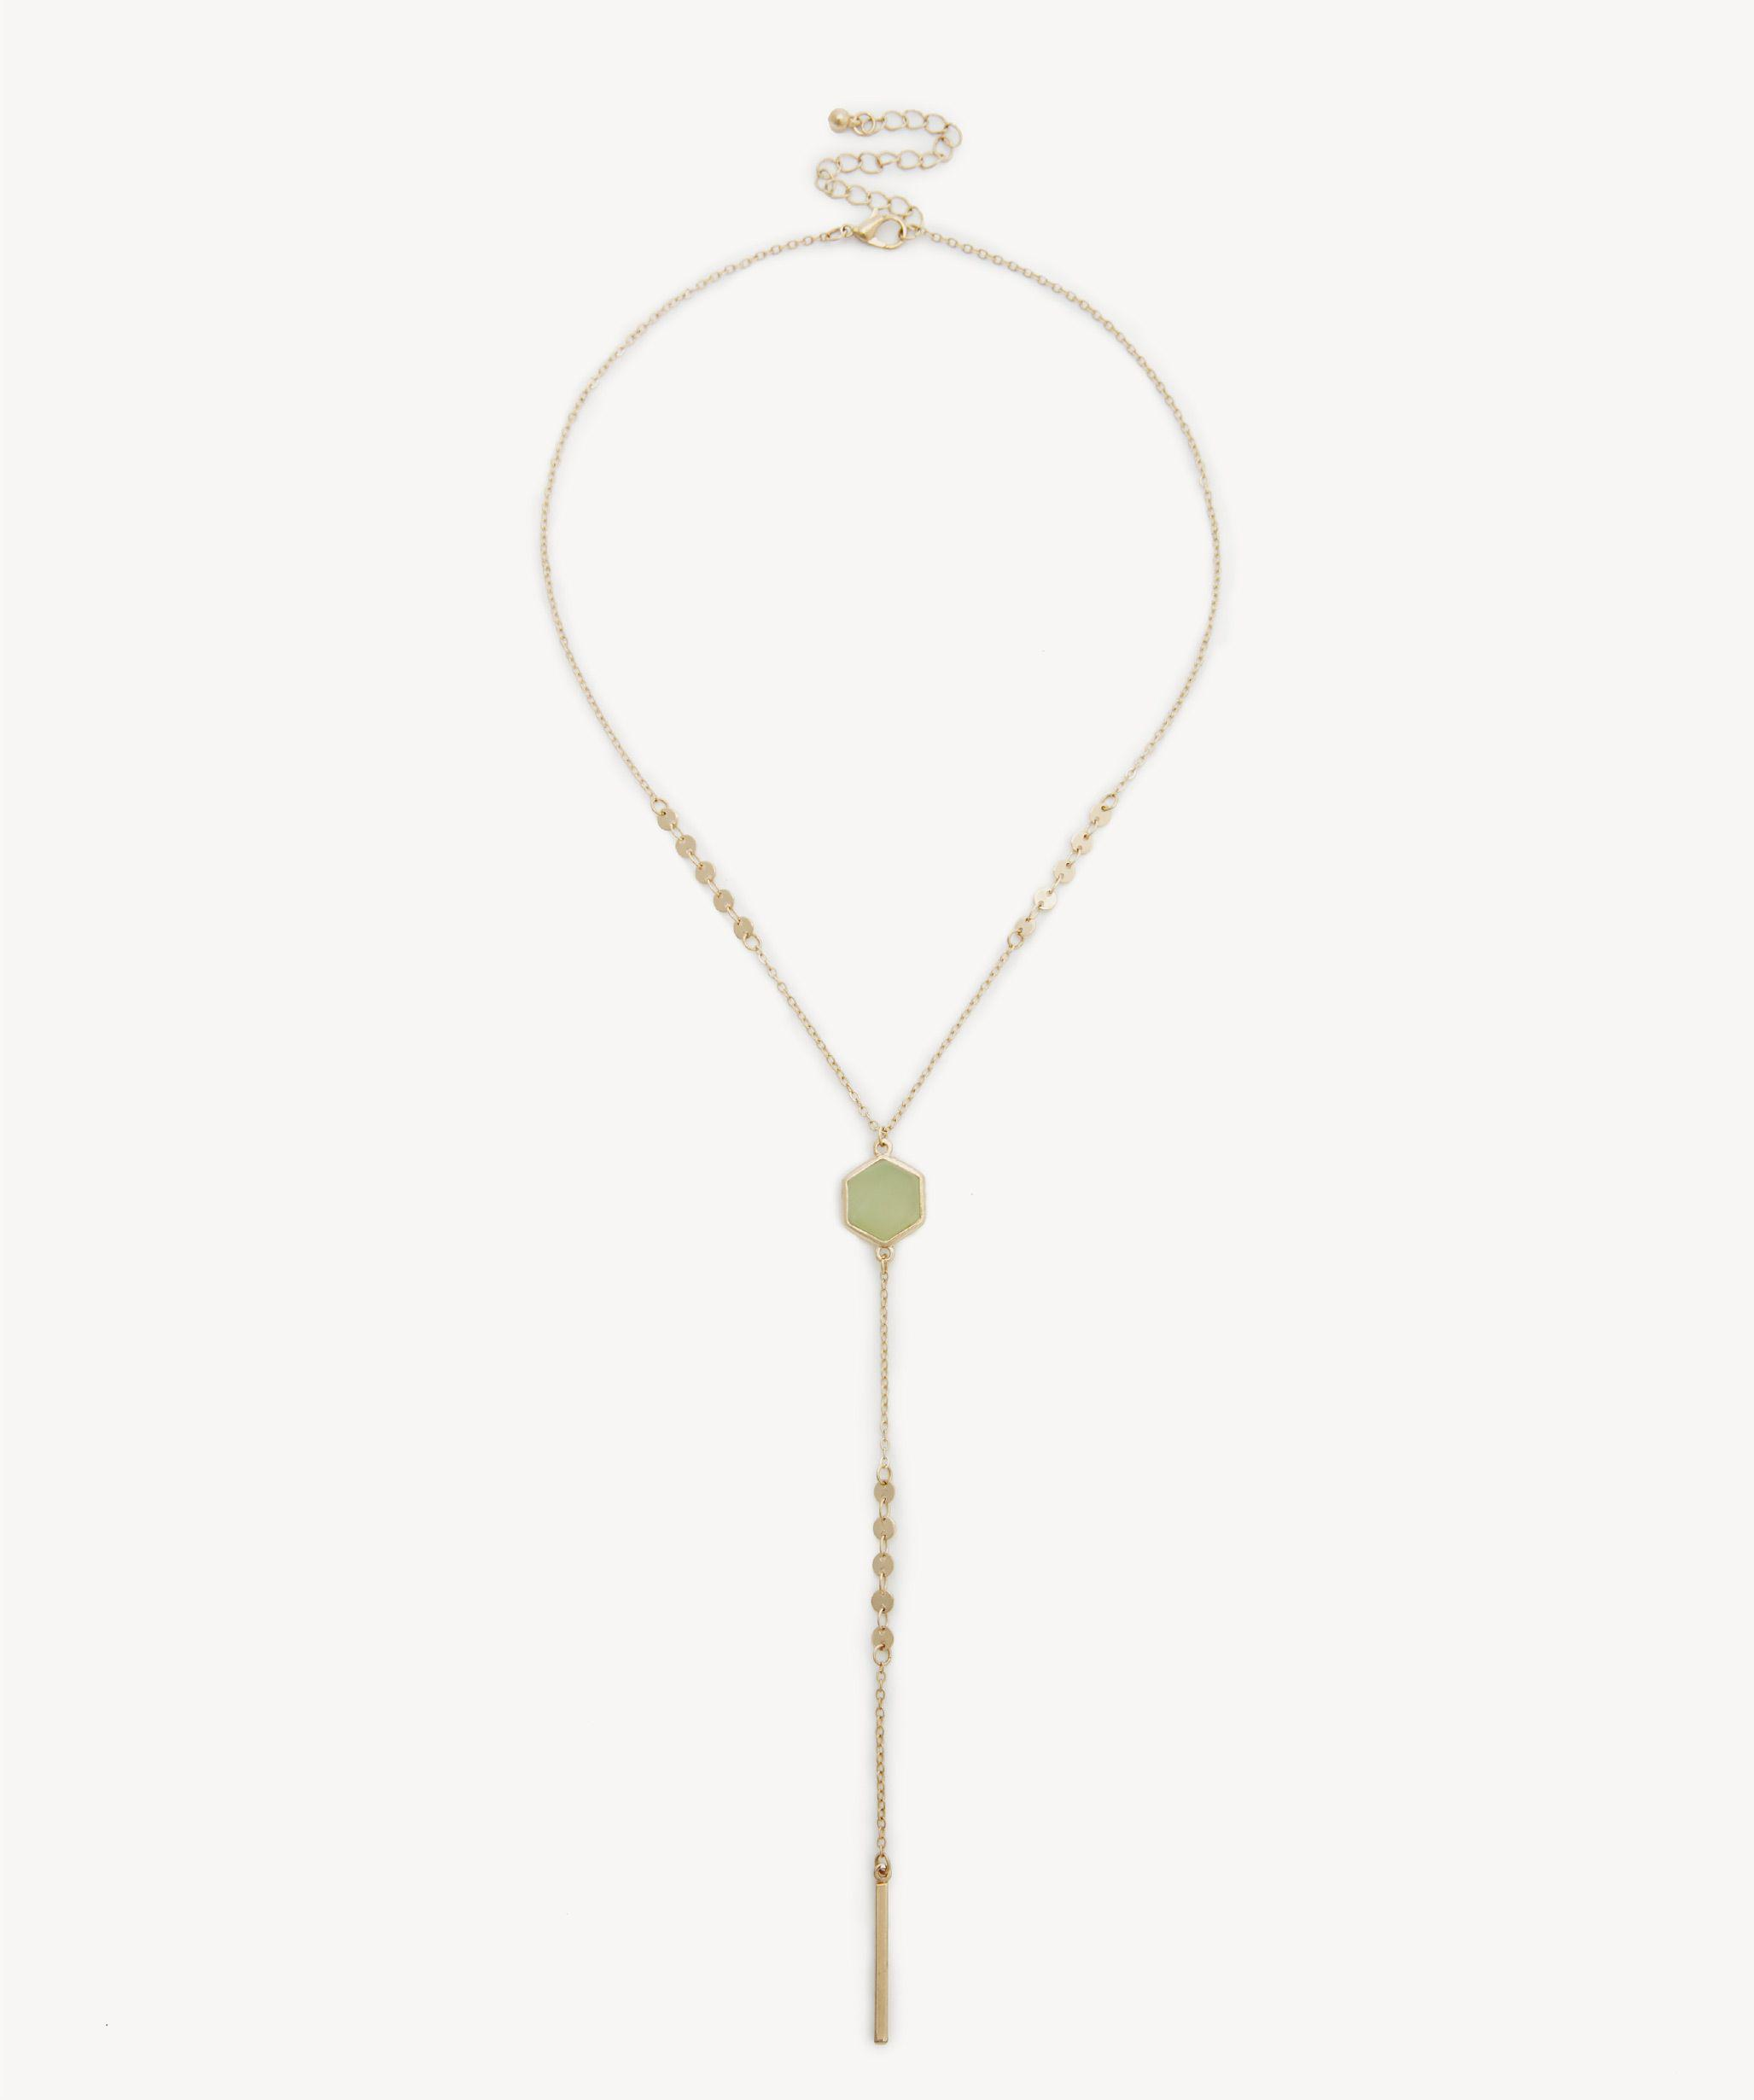 Sole Society Womens Dainty Layering Y Necklace Rose Gold One Size From Sole Society OQF150